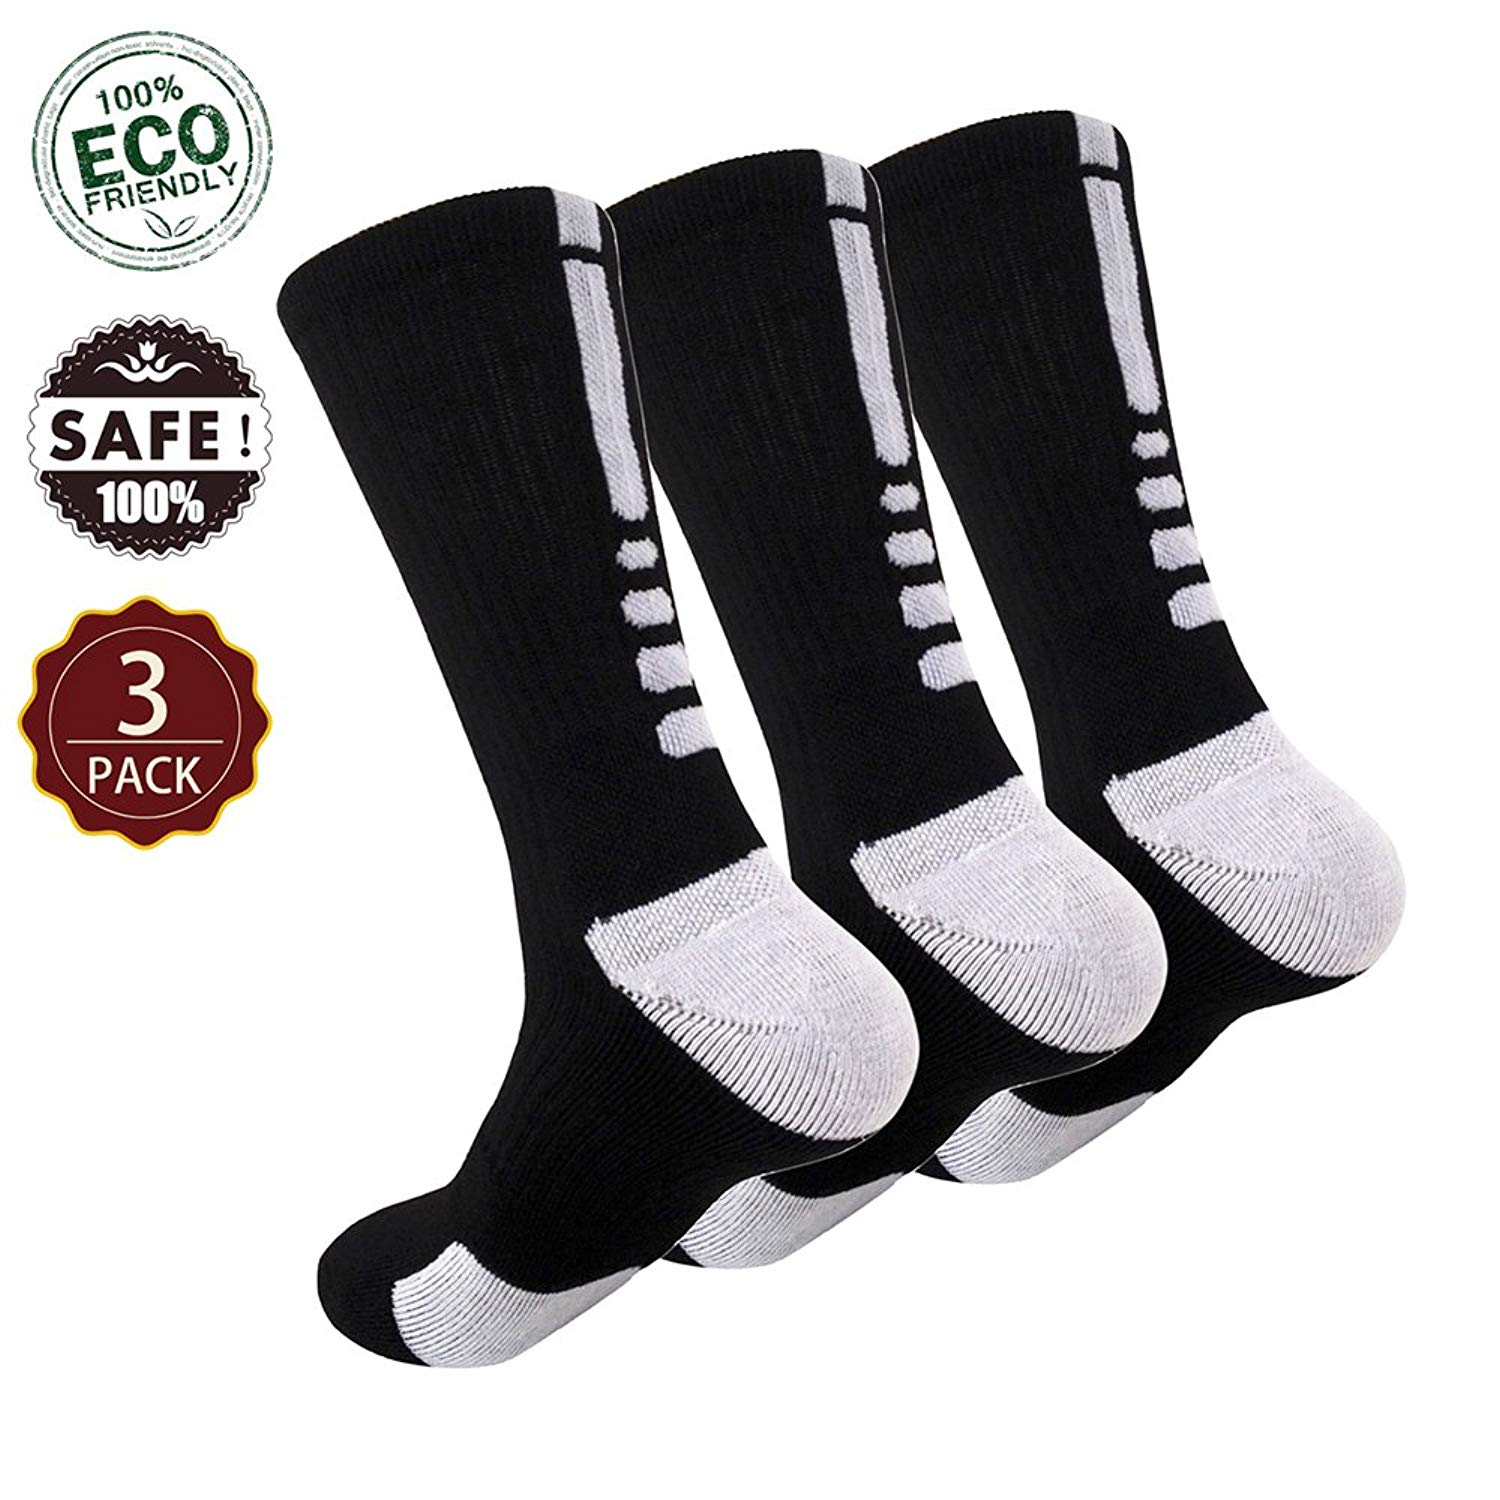 3fd97299f76 Get Quotations · Elite Socks Mens Basketball Socks 5 Pack Boys Athletic  Sports Outdoor Dri-Fit Compression Socks